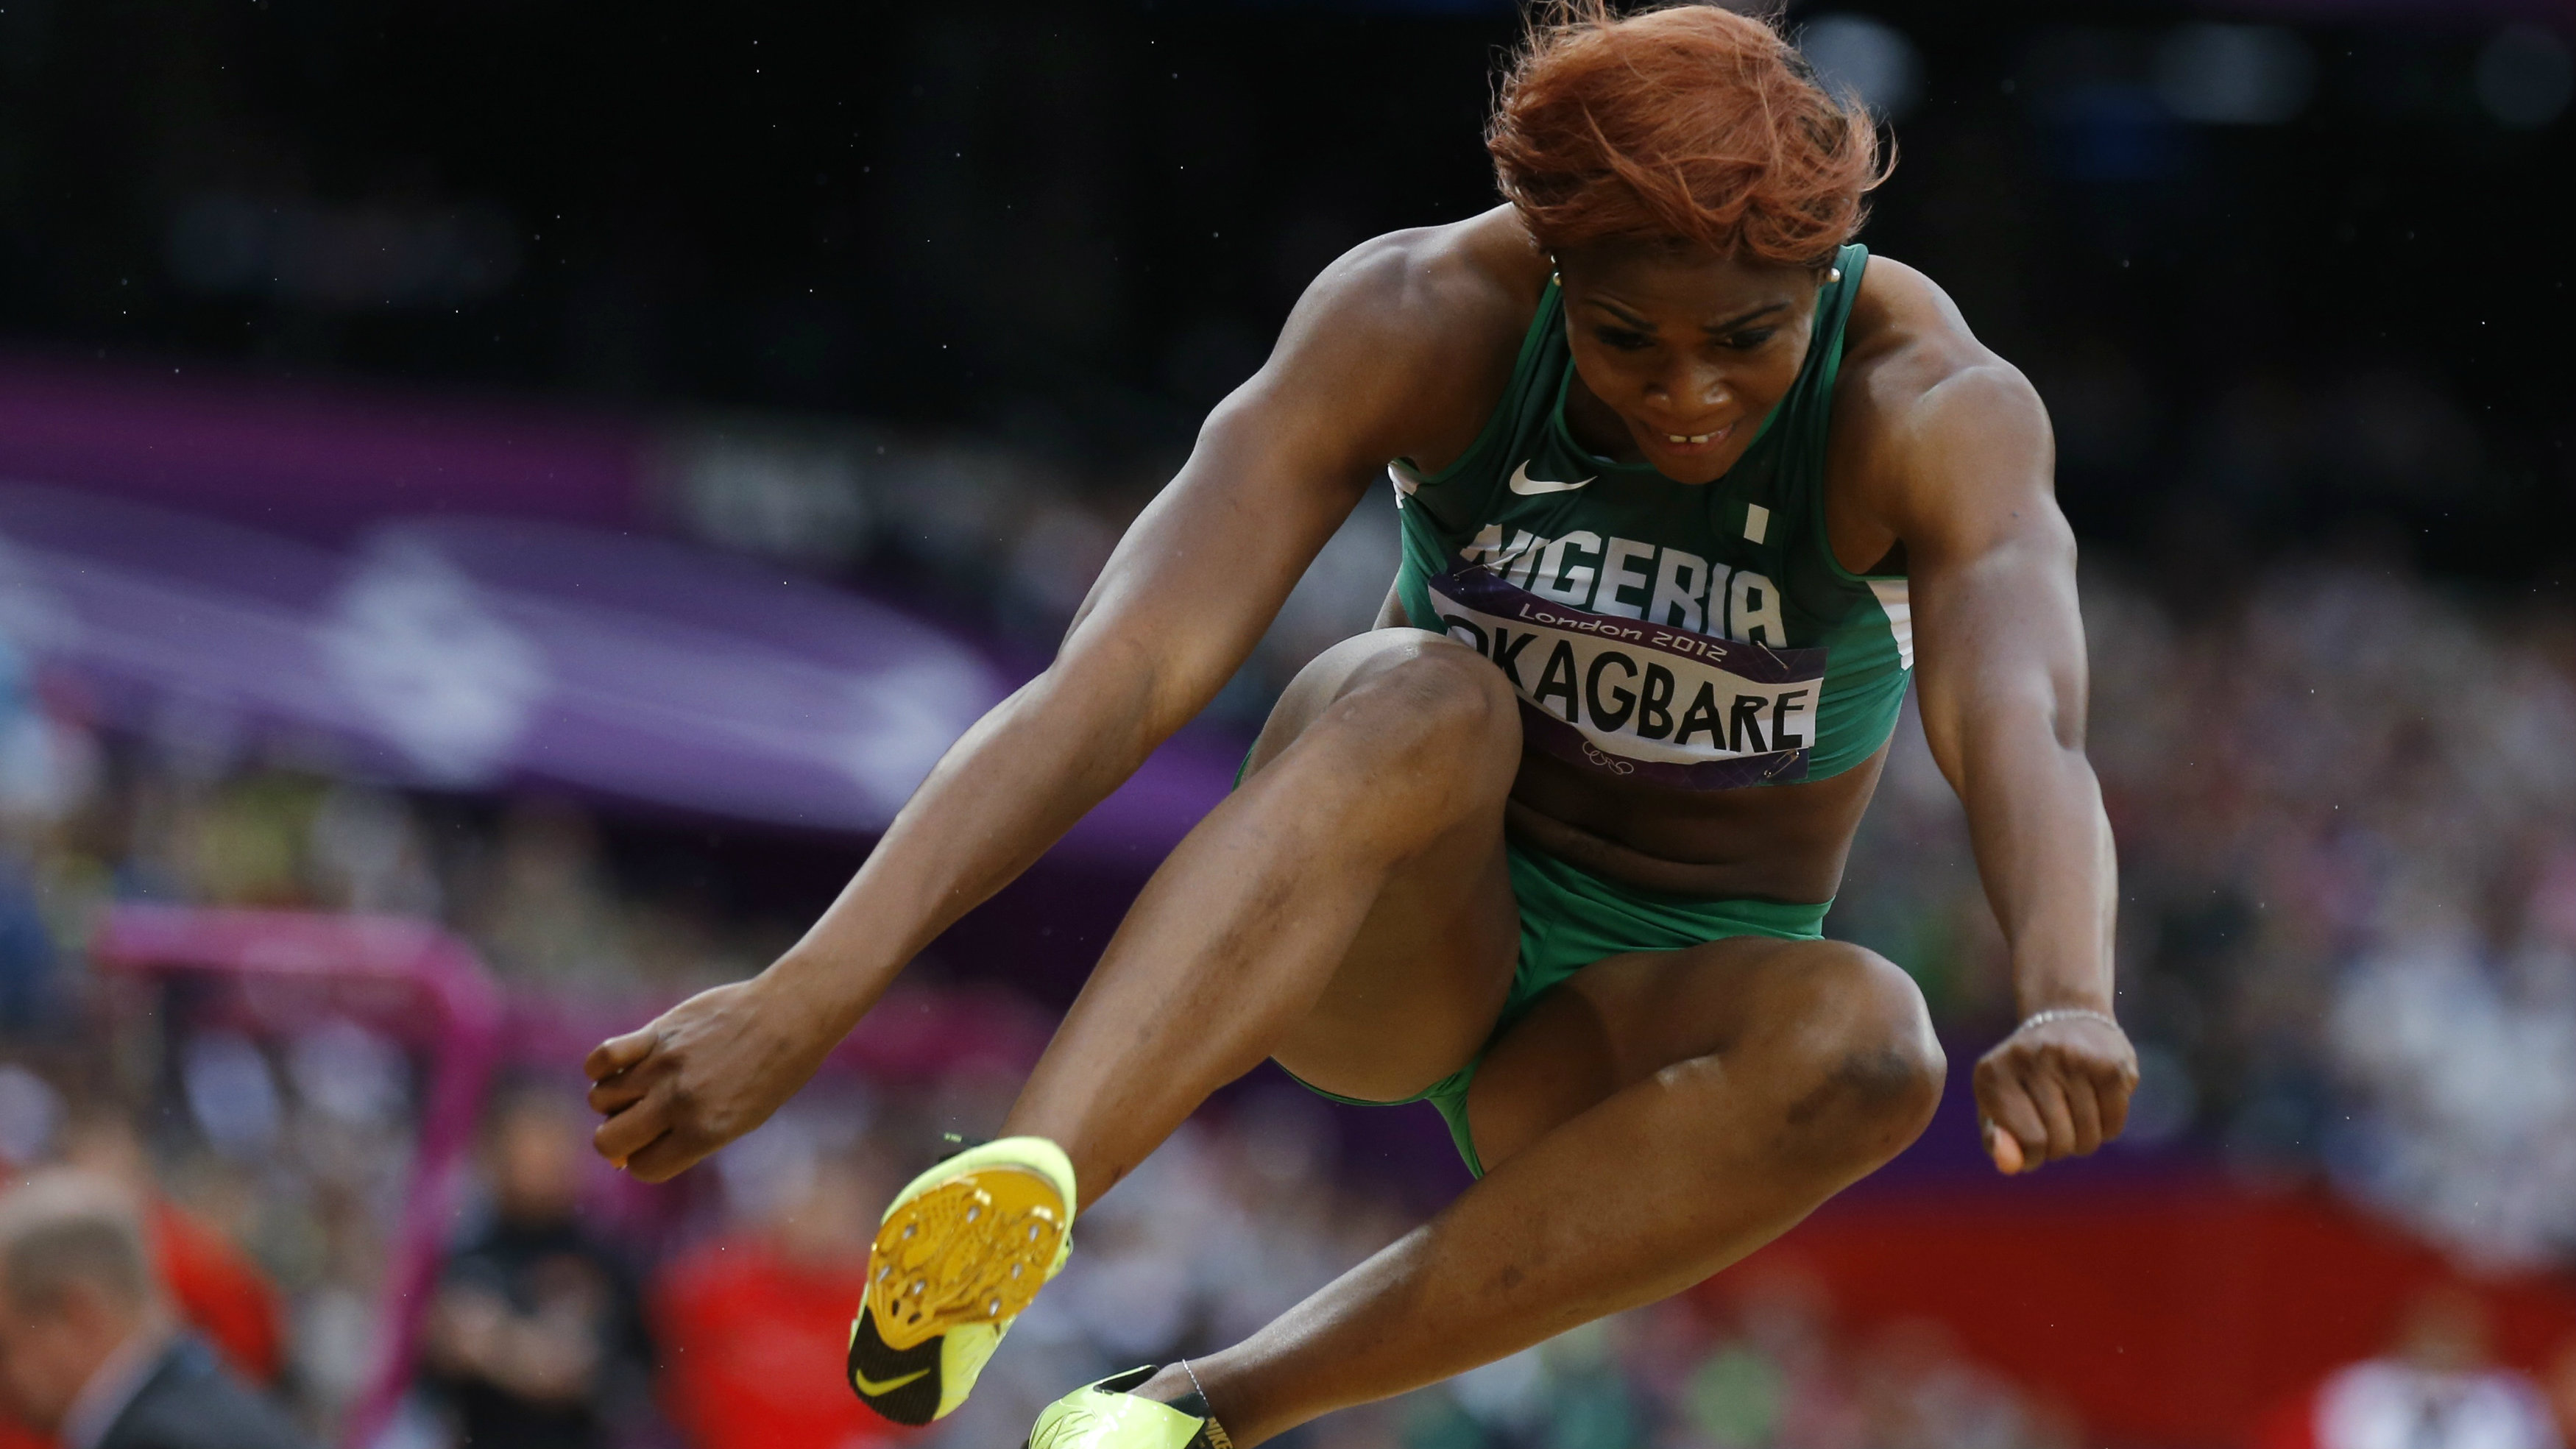 Nigeria's Blessing Okagbare competes in her women's long jump qualification during the London 2012 Olympic Games at the Olympic Stadium August 7, 2012.